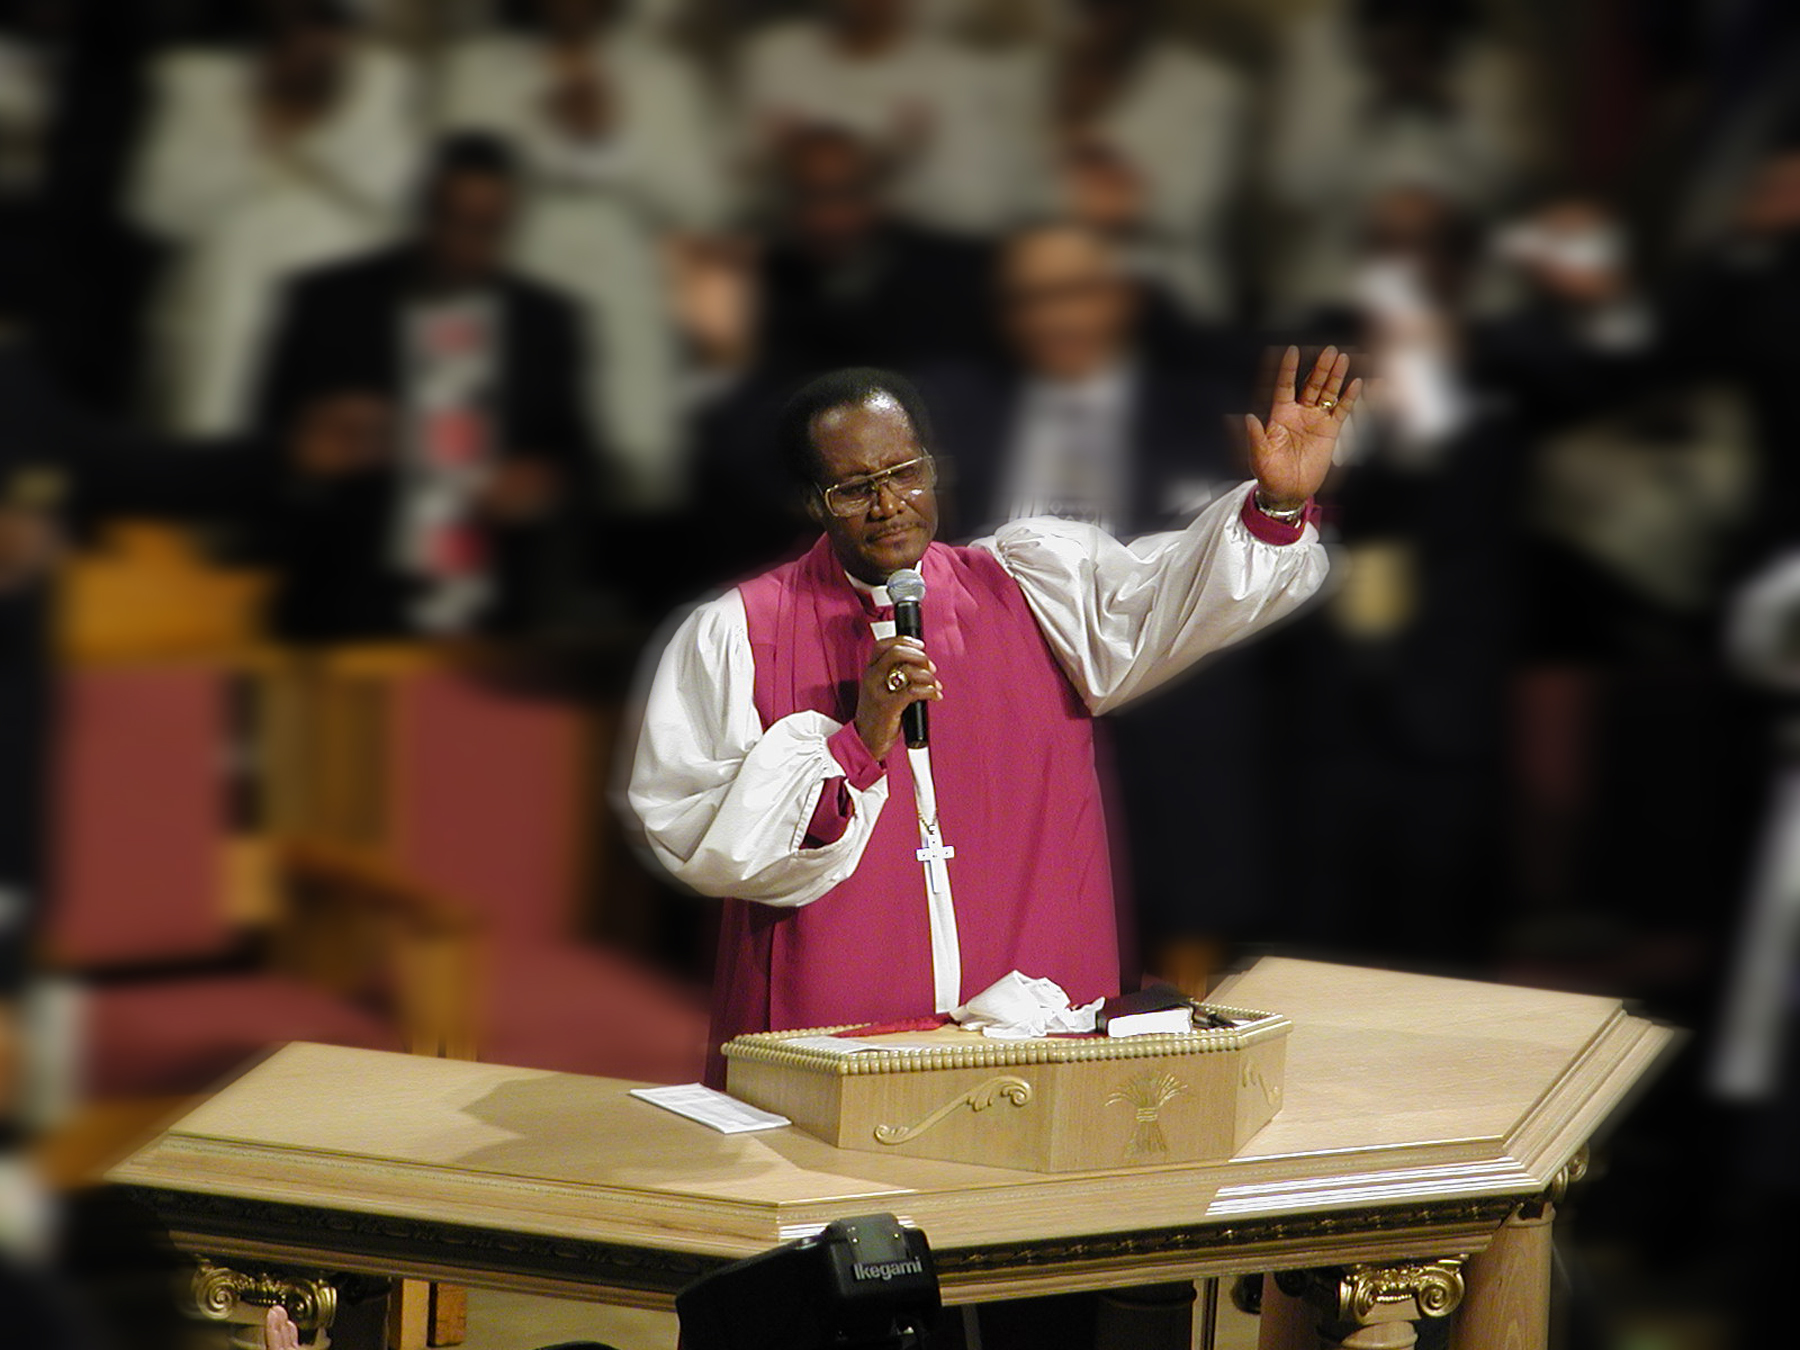 Bishop PA Brooks is Appointed by International Church of God in Christ 2nd Assistant to Presiding Bishop Charles H. Blake